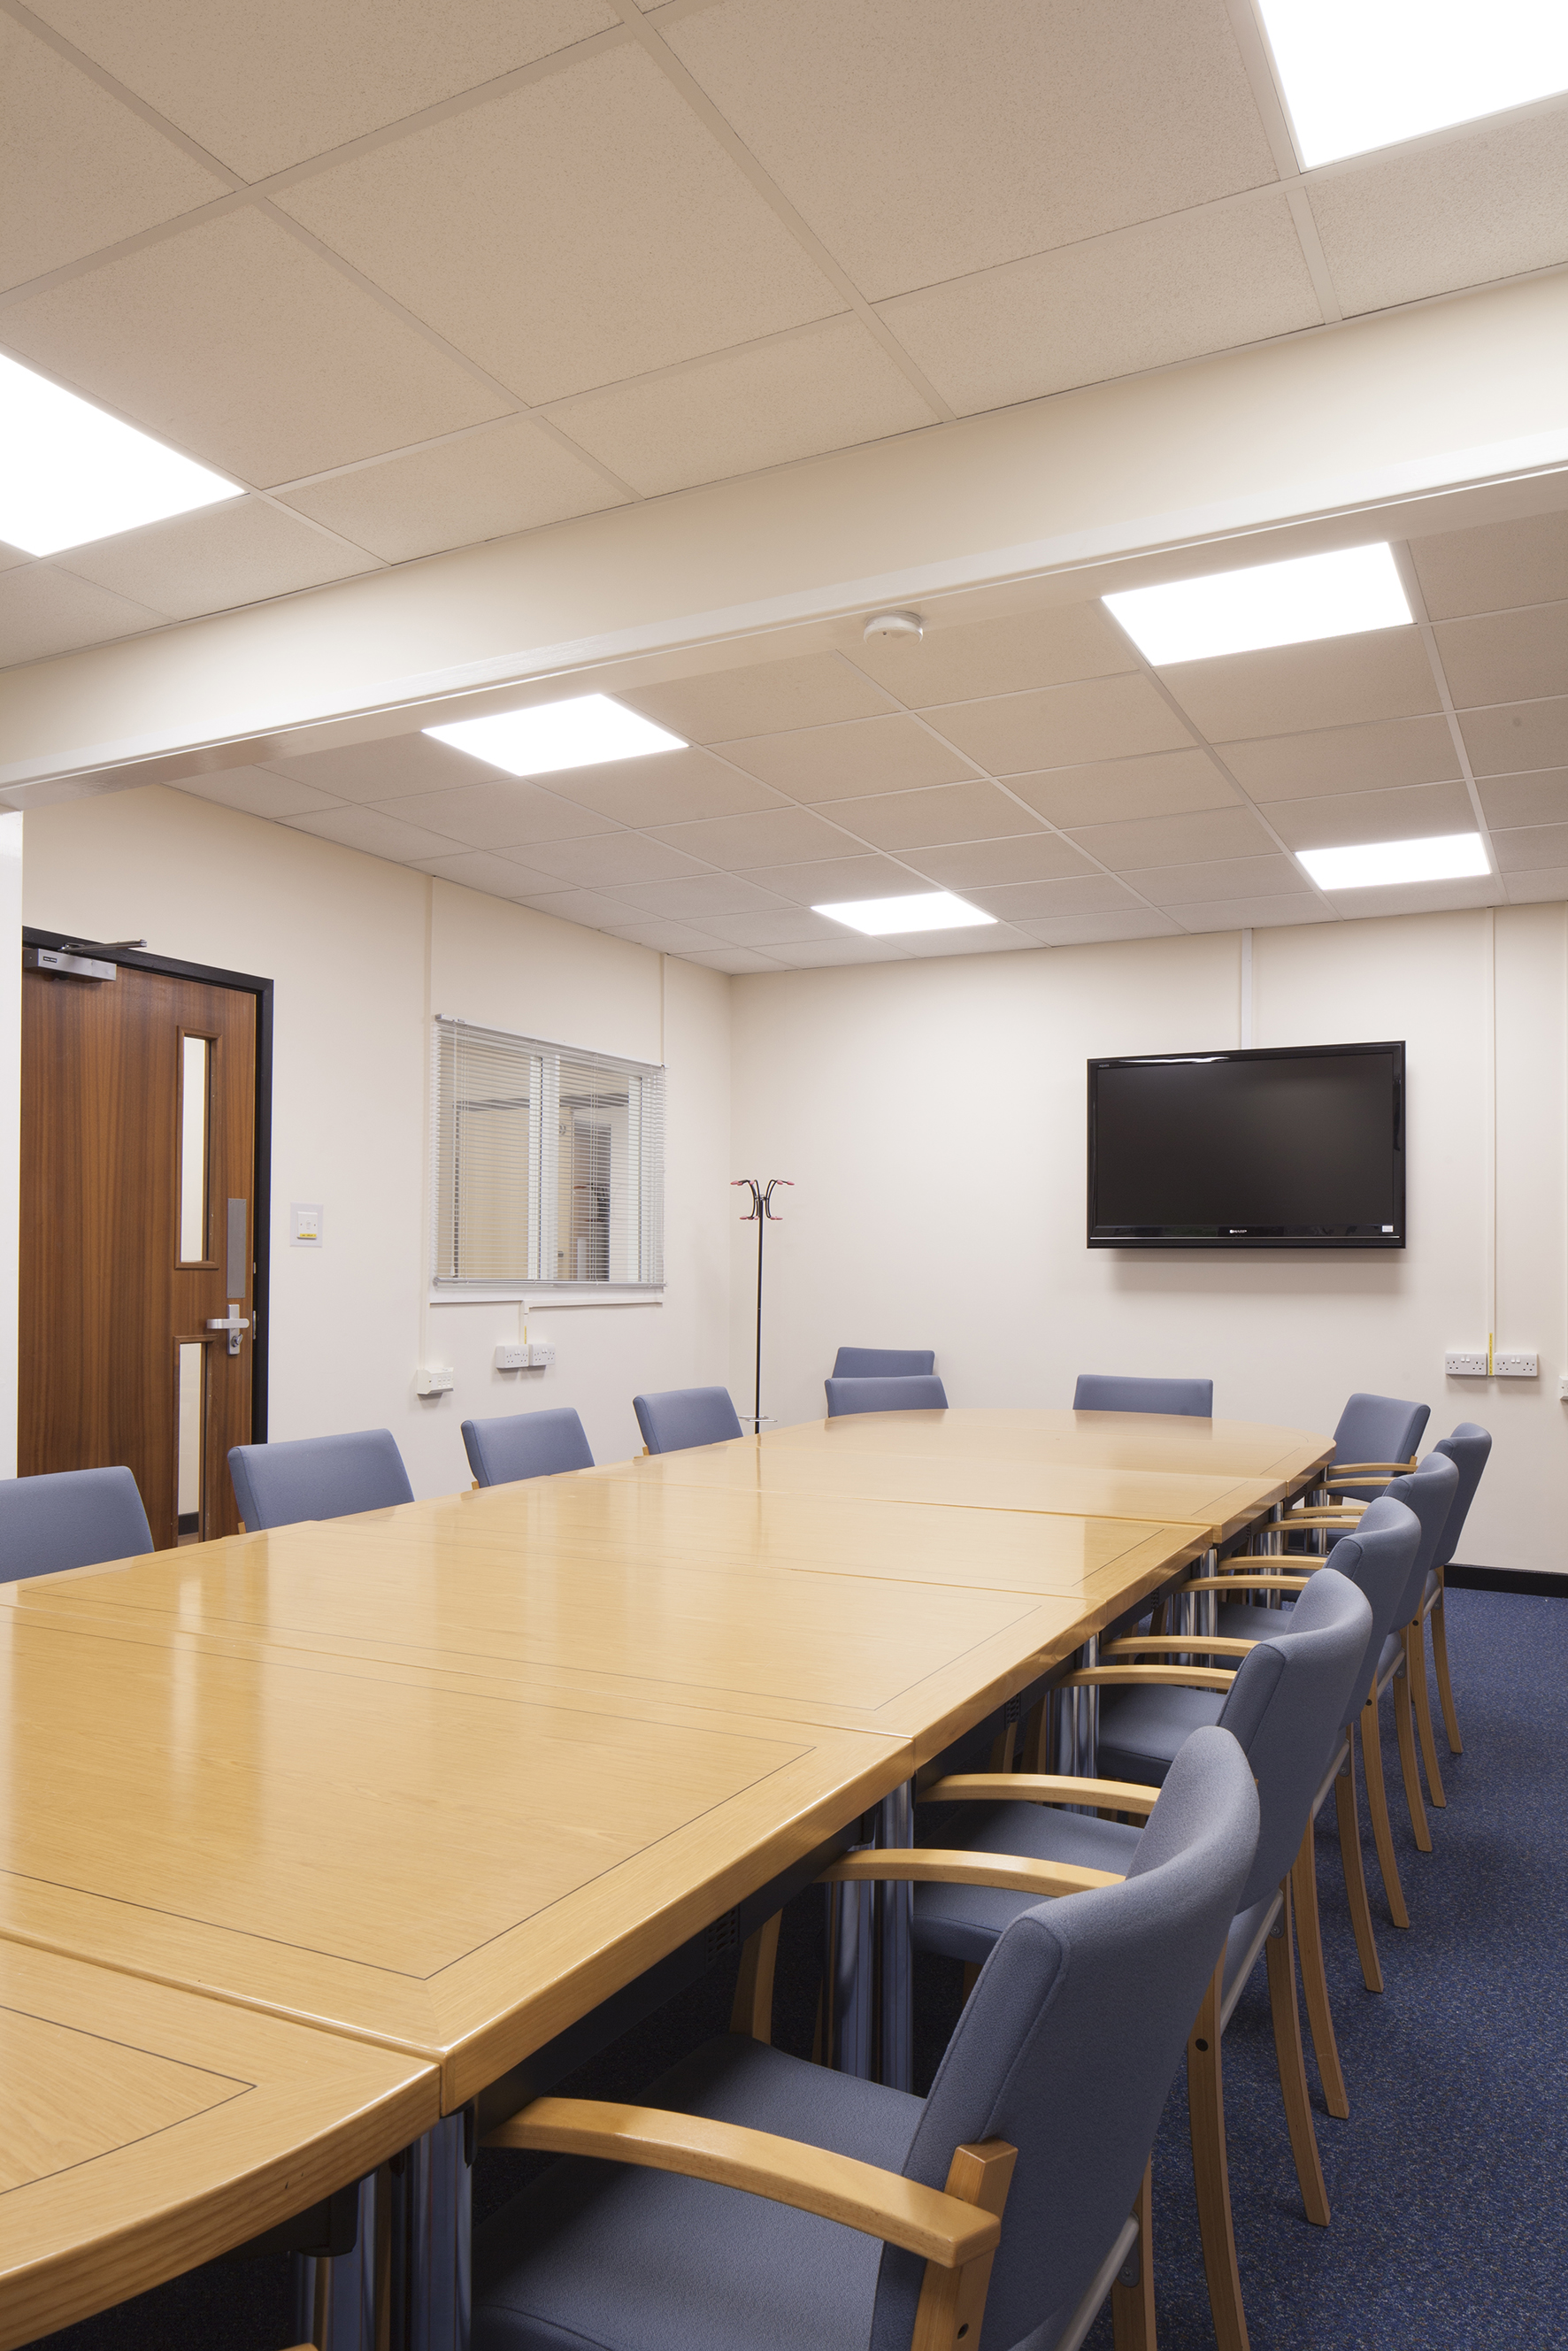 St Albans City And District Council Invest In Goodlight Led Panels To Transform Office